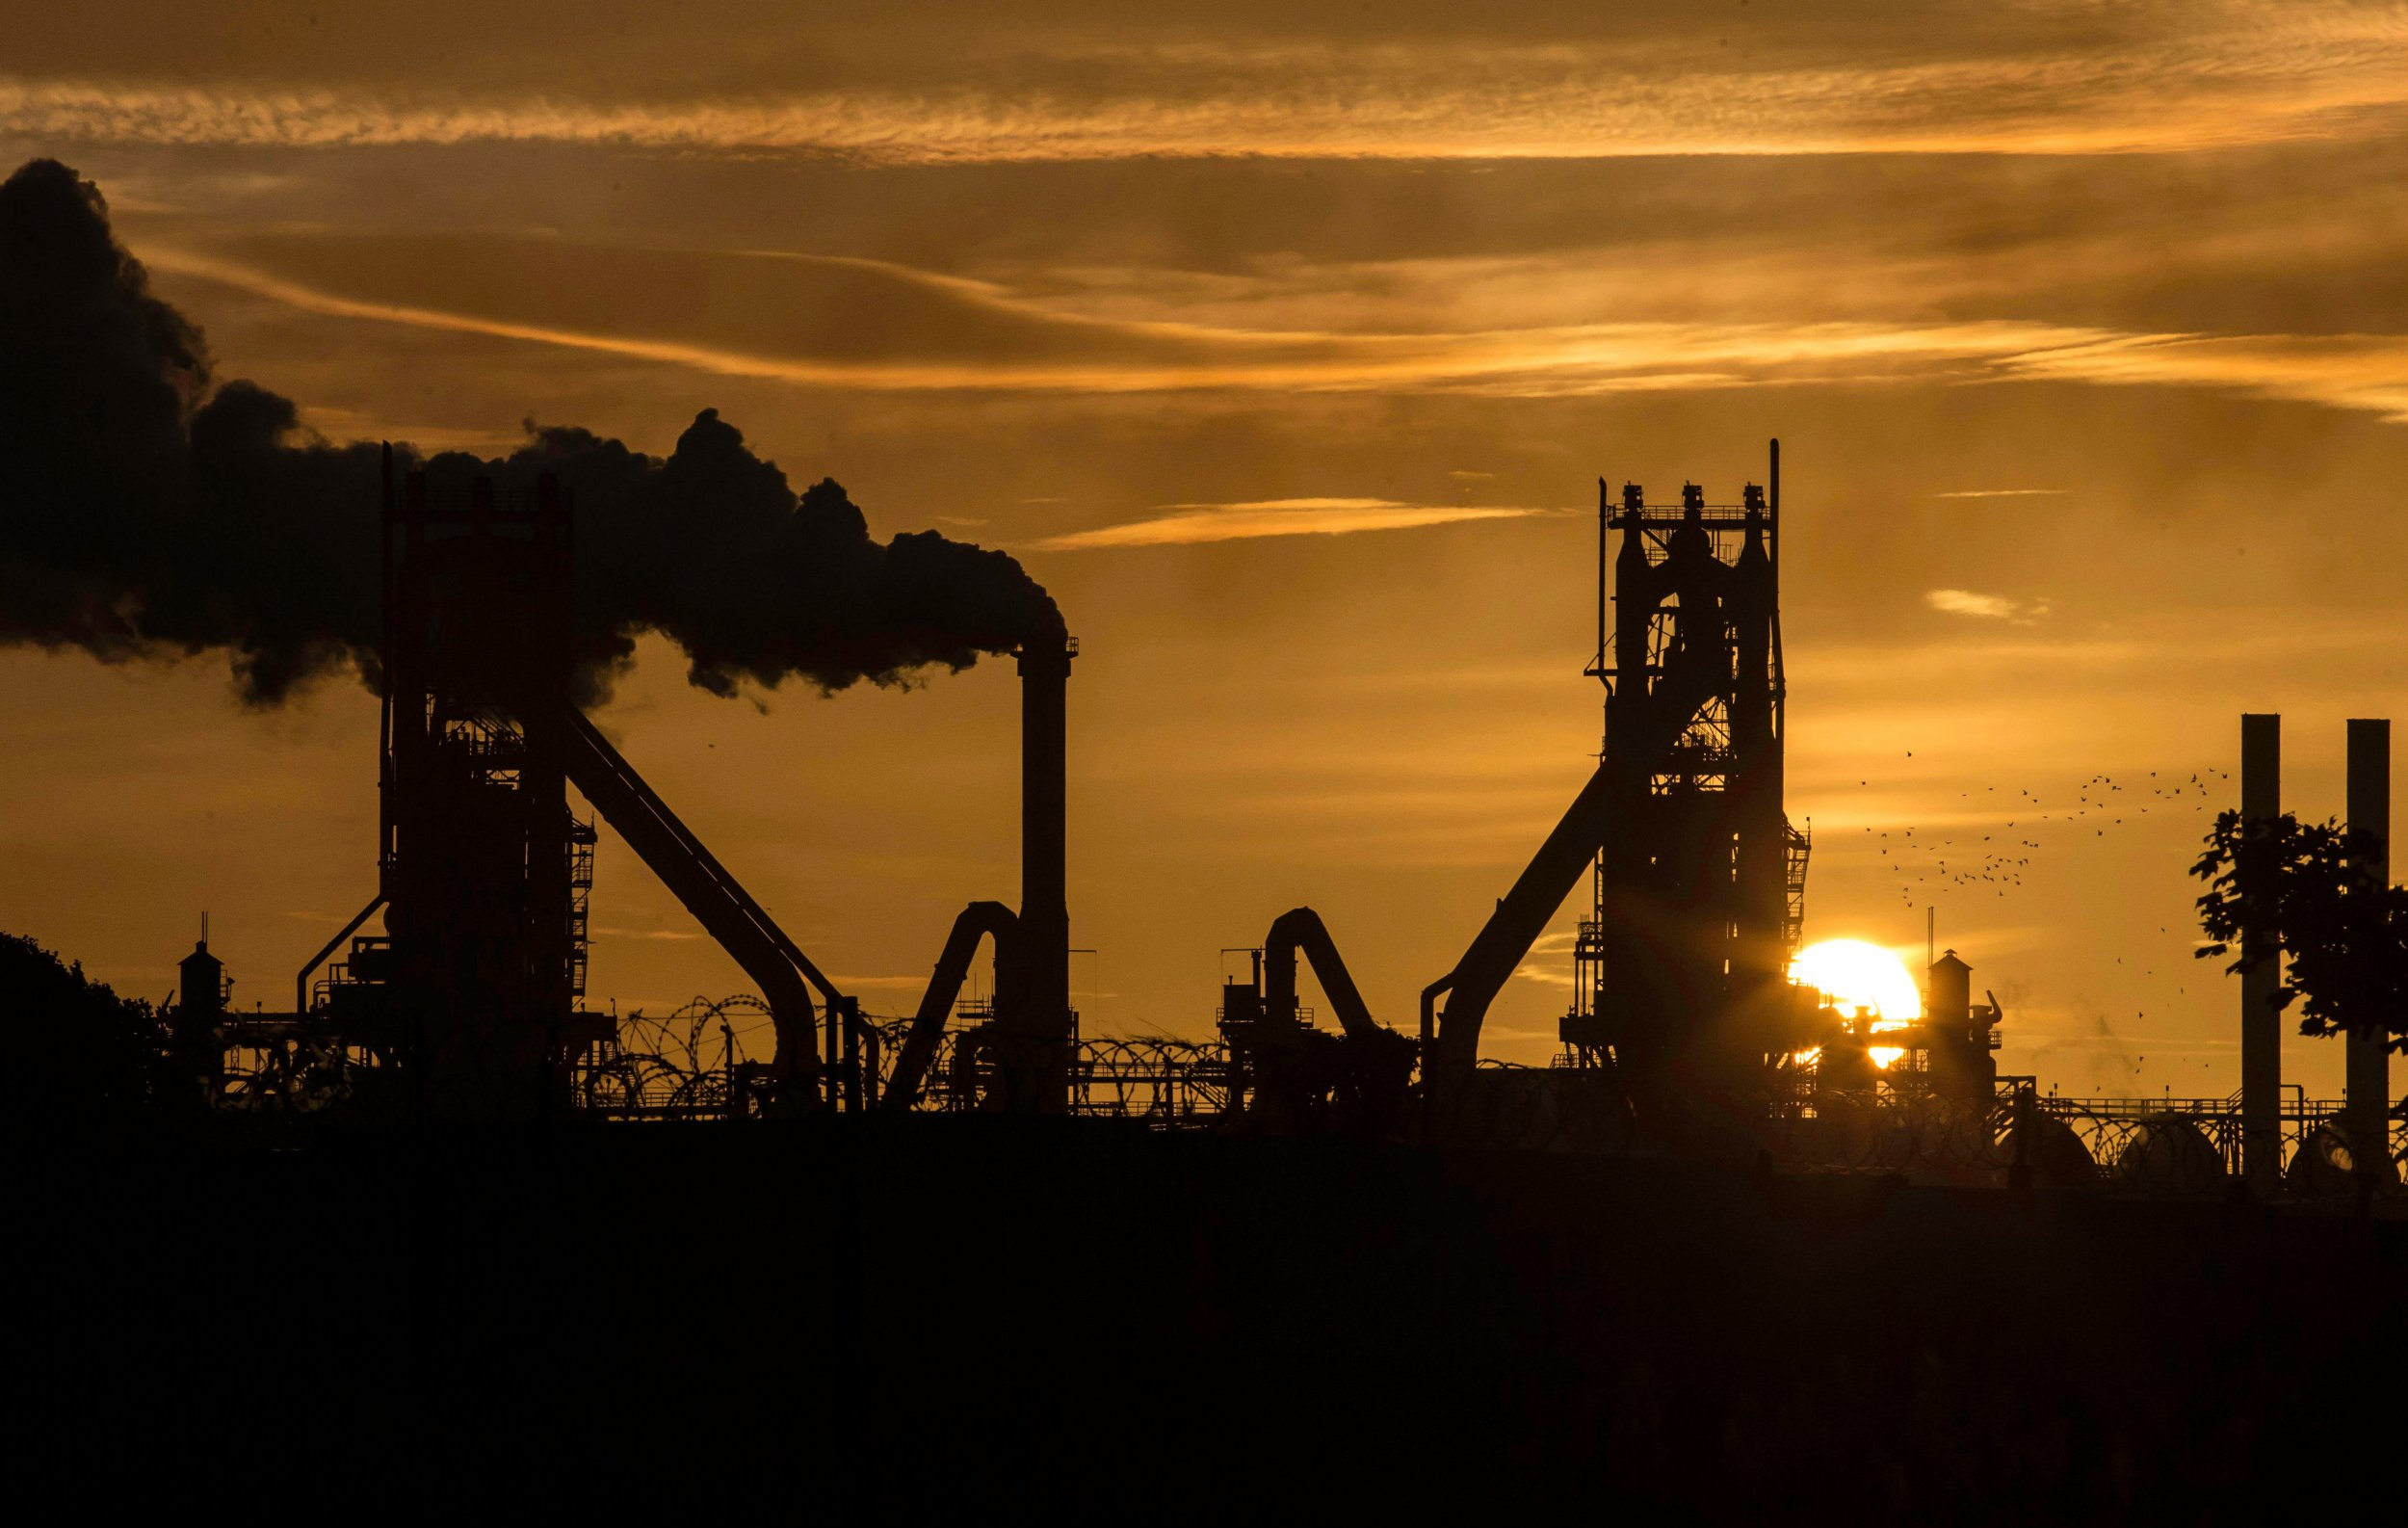 British Steel collapses putting 25,000 jobs at risk